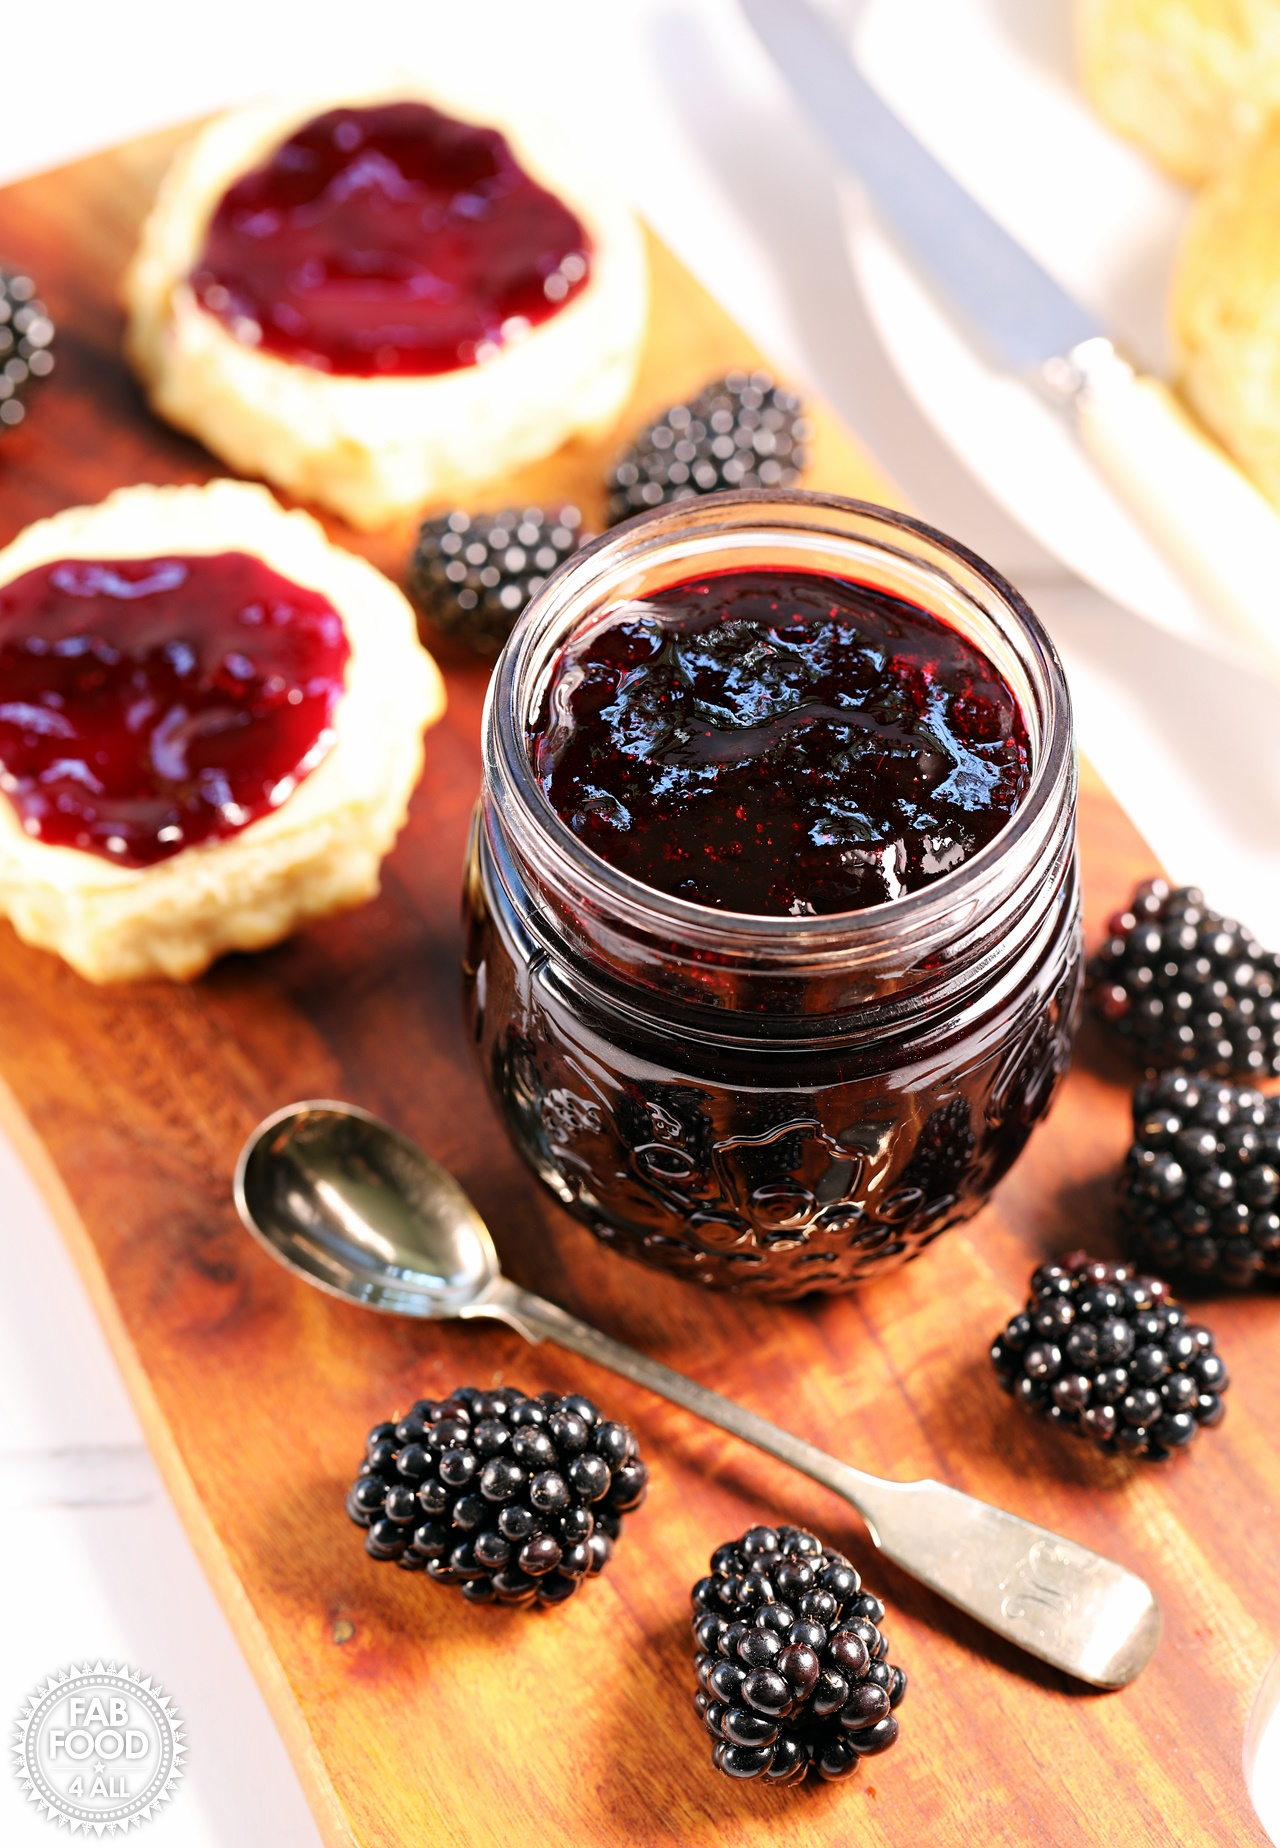 Easy Seedless Blackberry Jam with scone. and blackberries on a board.